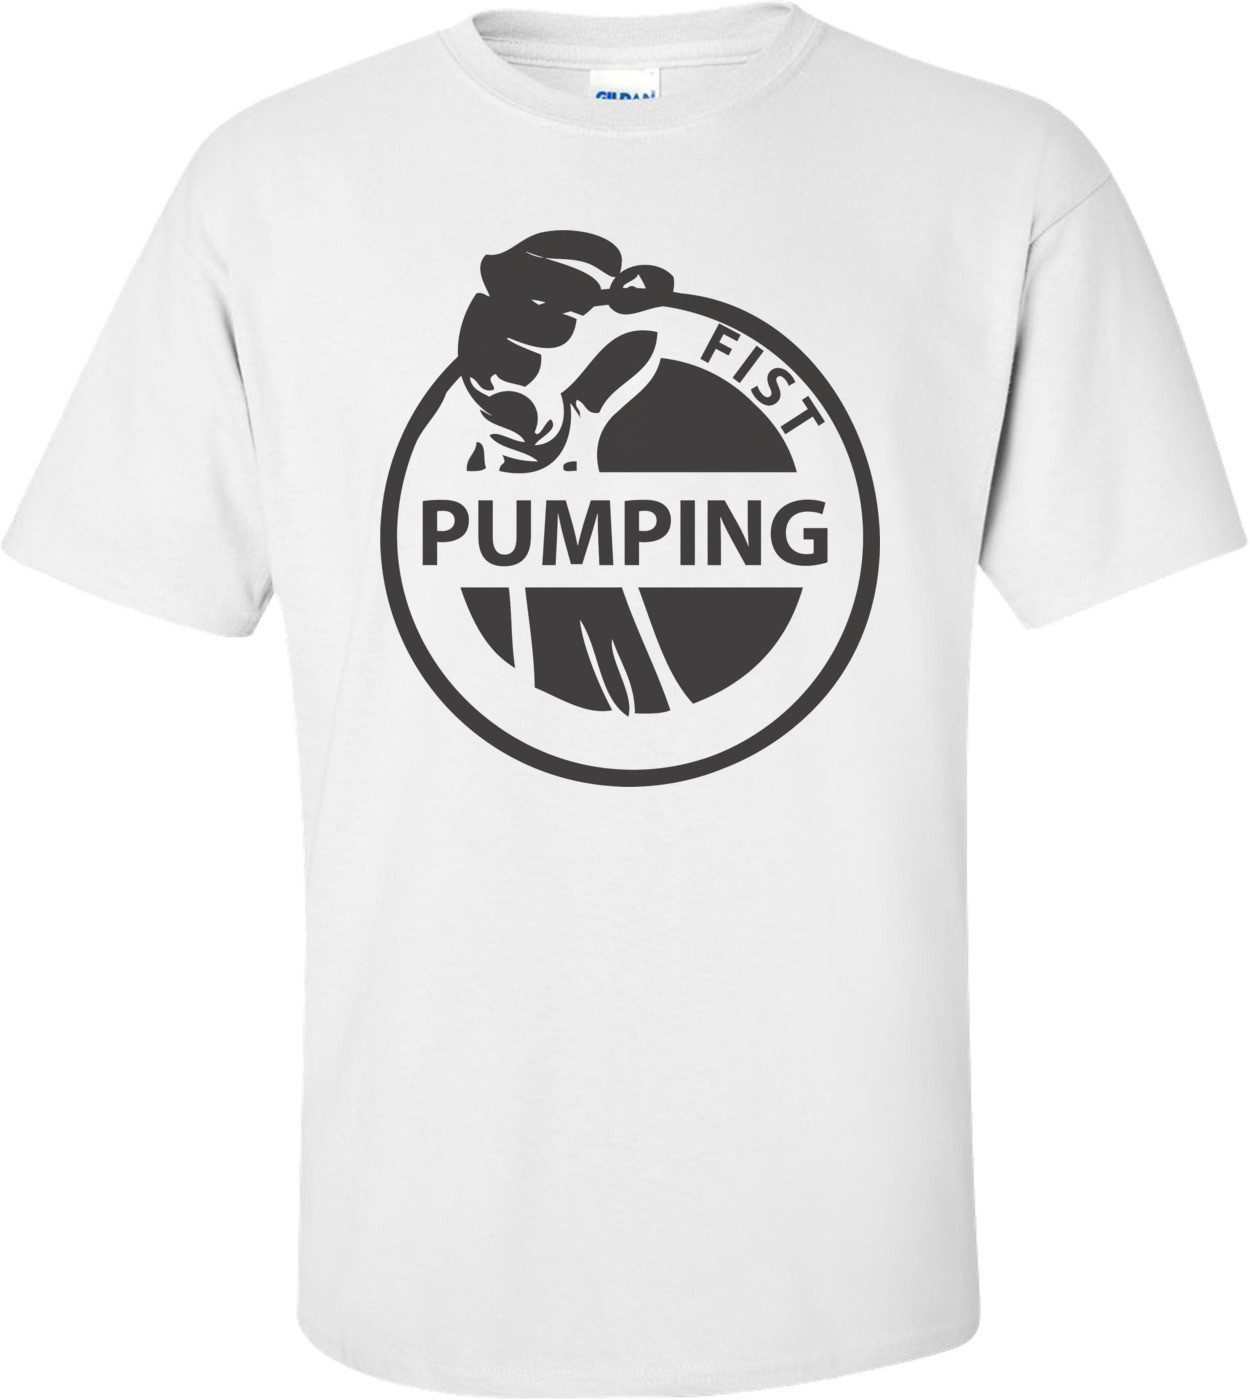 Fist Pumping - Jersey Shore T-shirt